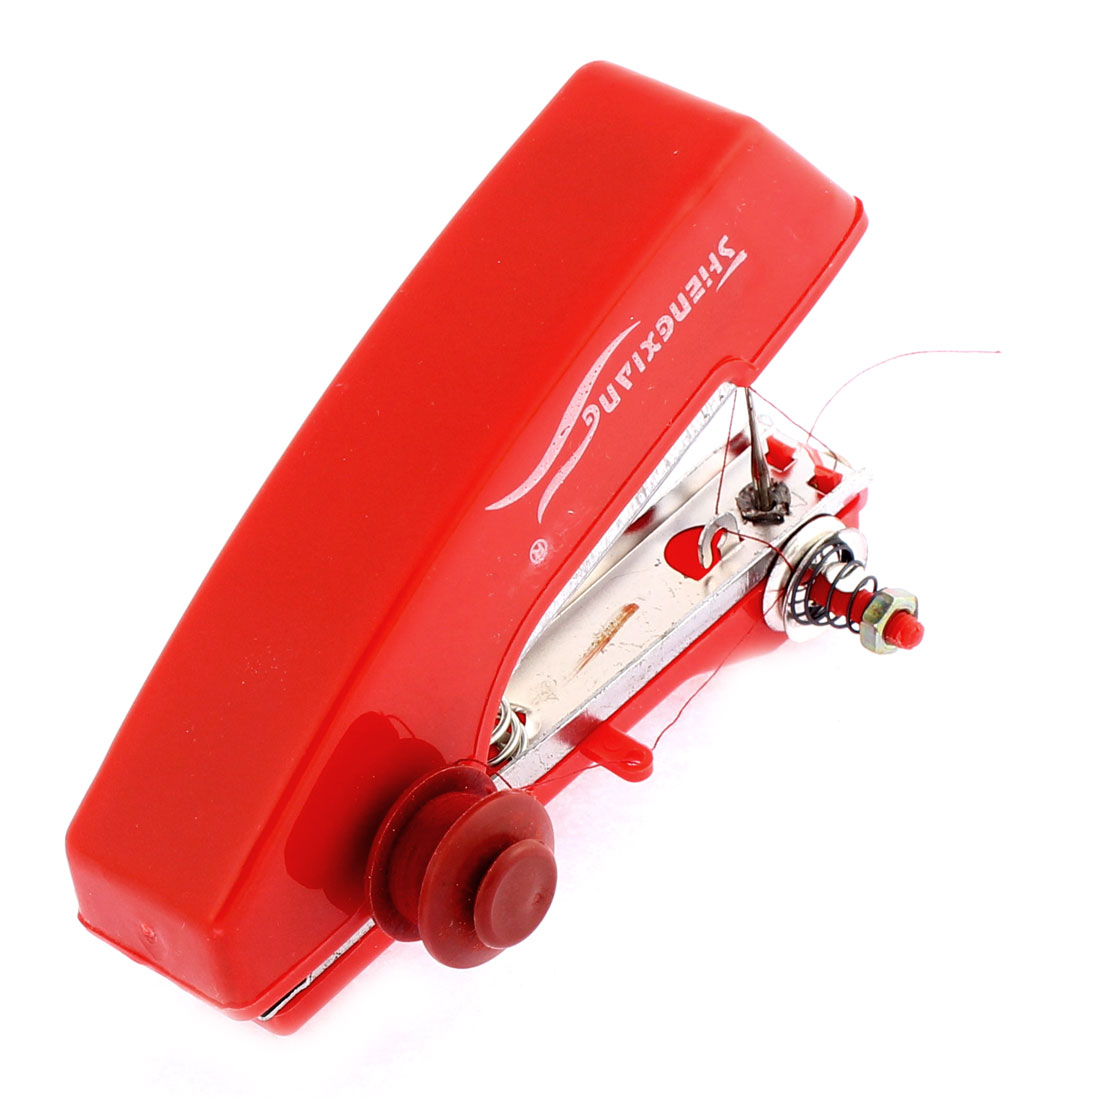 Plastic Tailor Clothes Stitch Mini Portable Handheld Sewing Machine Red